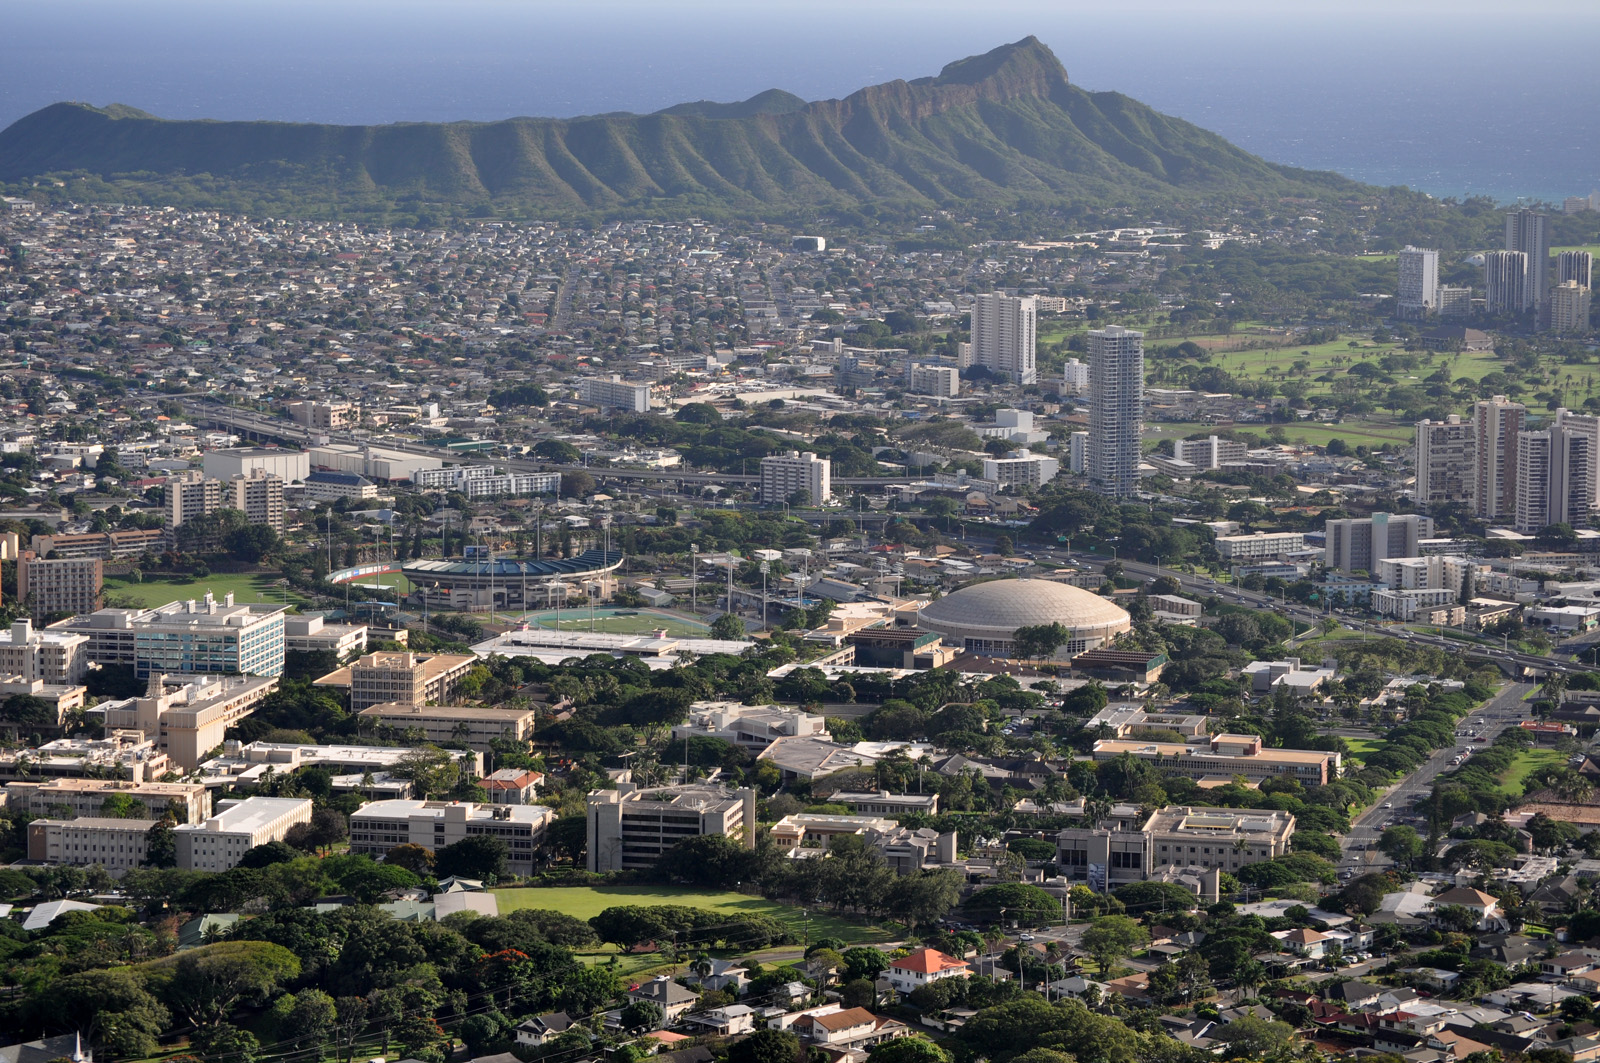 View of the Mānoa campus from Mt Tantalus.   (source: http://commons.wikimedia.org/wiki/File:University_of_Hawaii_Air_view.jpg)